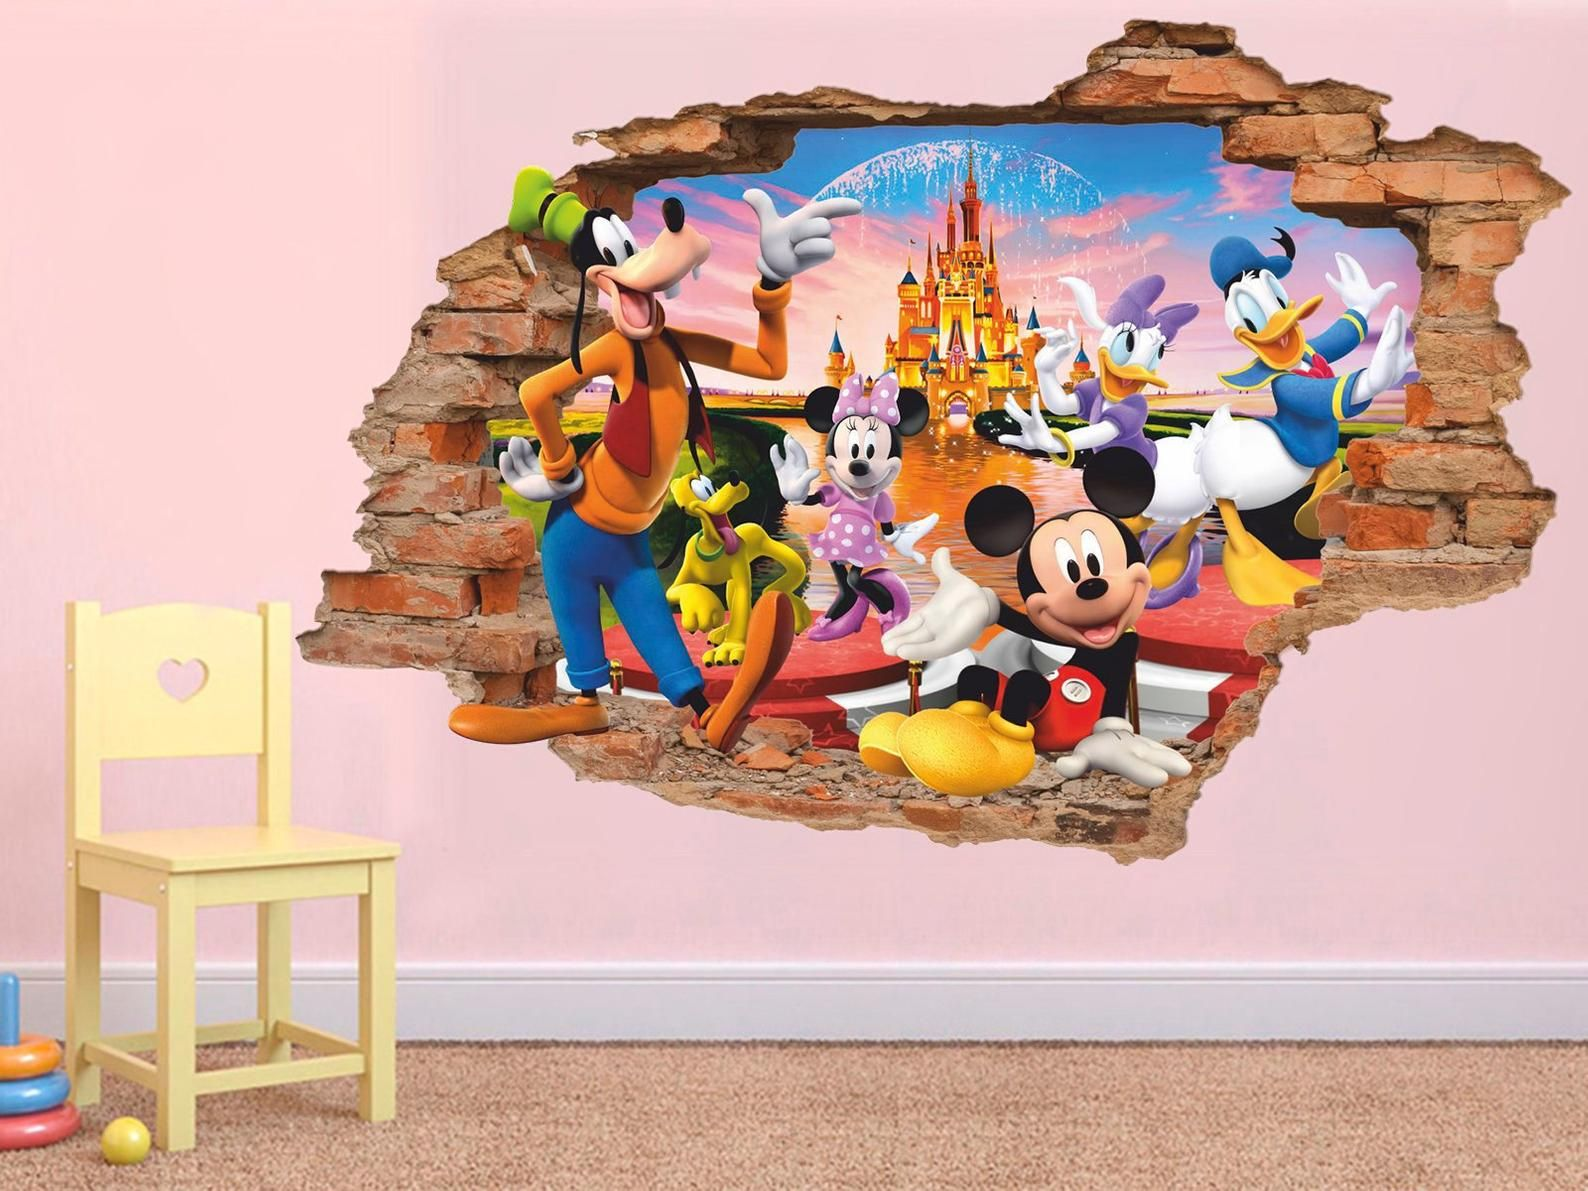 Mickey Mouse Goofey Donald Disney Children/'s Bedroom Decal Wall Sticker Picture